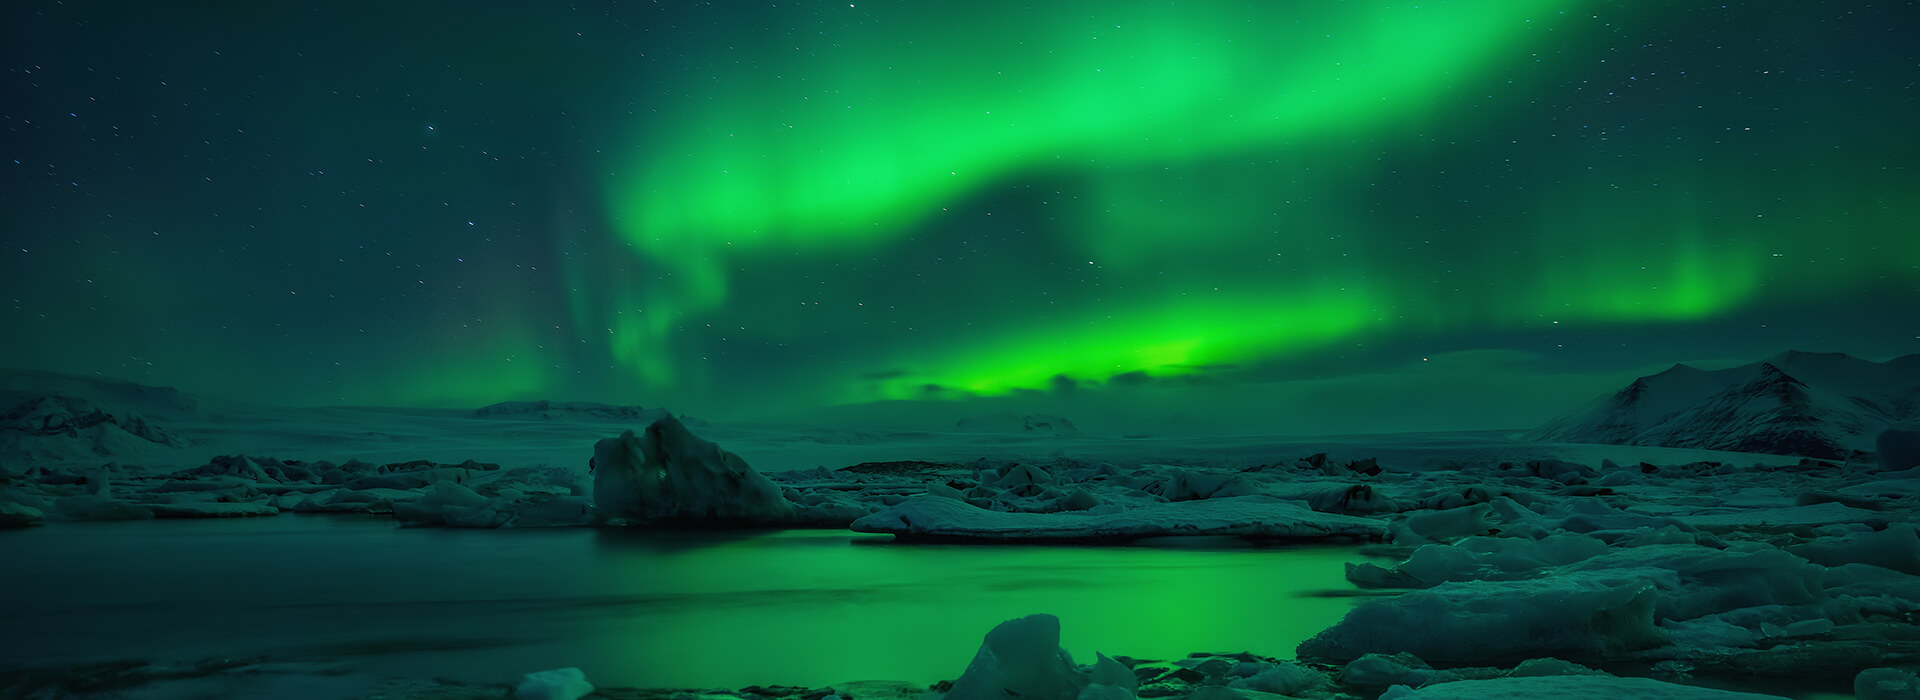 Northern Lights in Iceland – All About Aurora Borealis